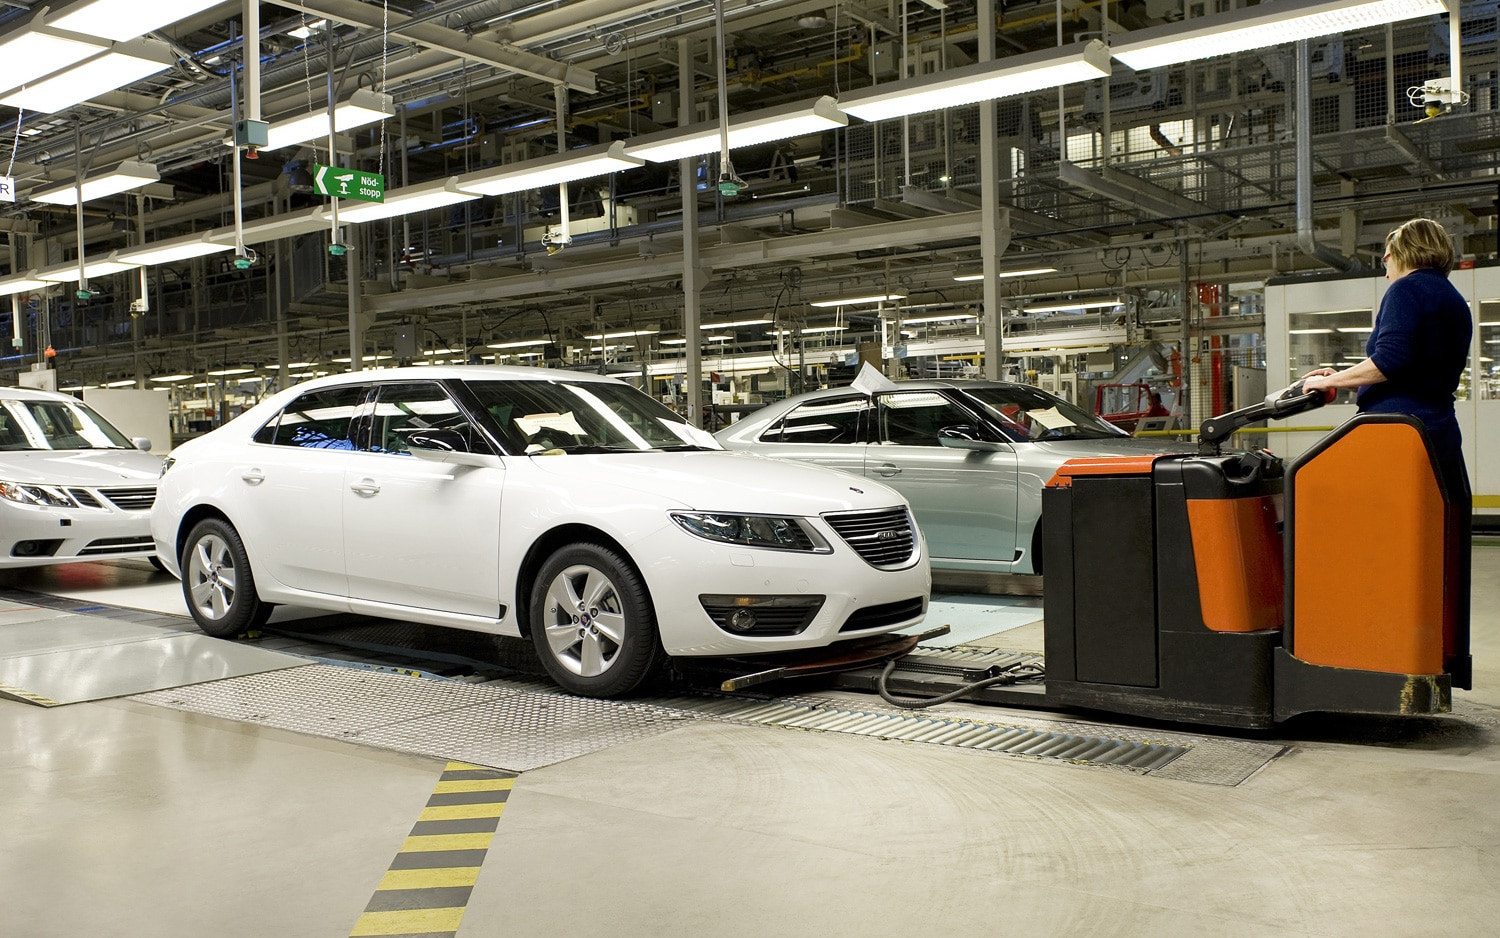 2011 Saab 9 5 Production Line Side View11